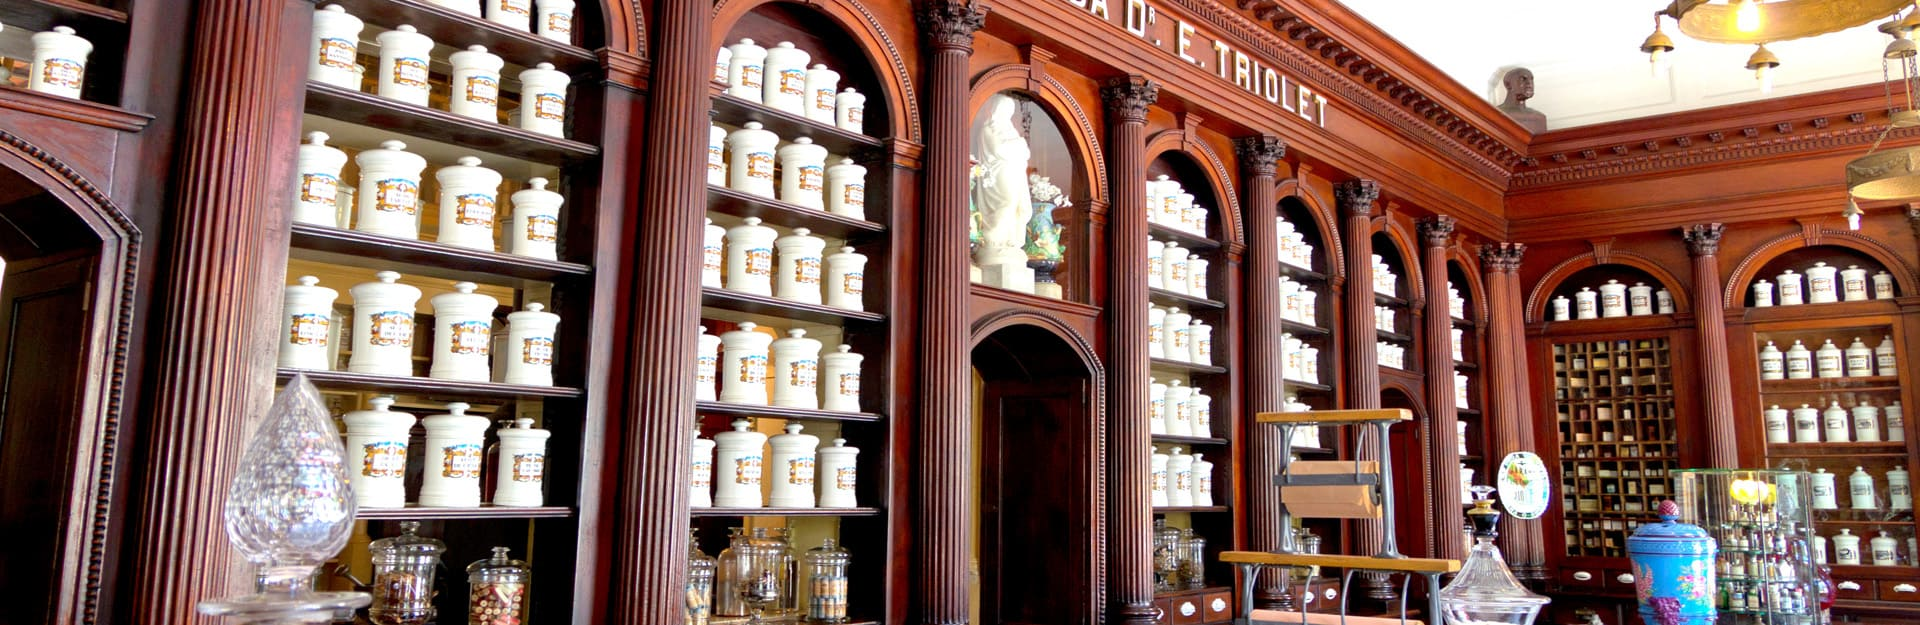 Pharmaceutical Museum, French heritage in Cuba, Matanzas City